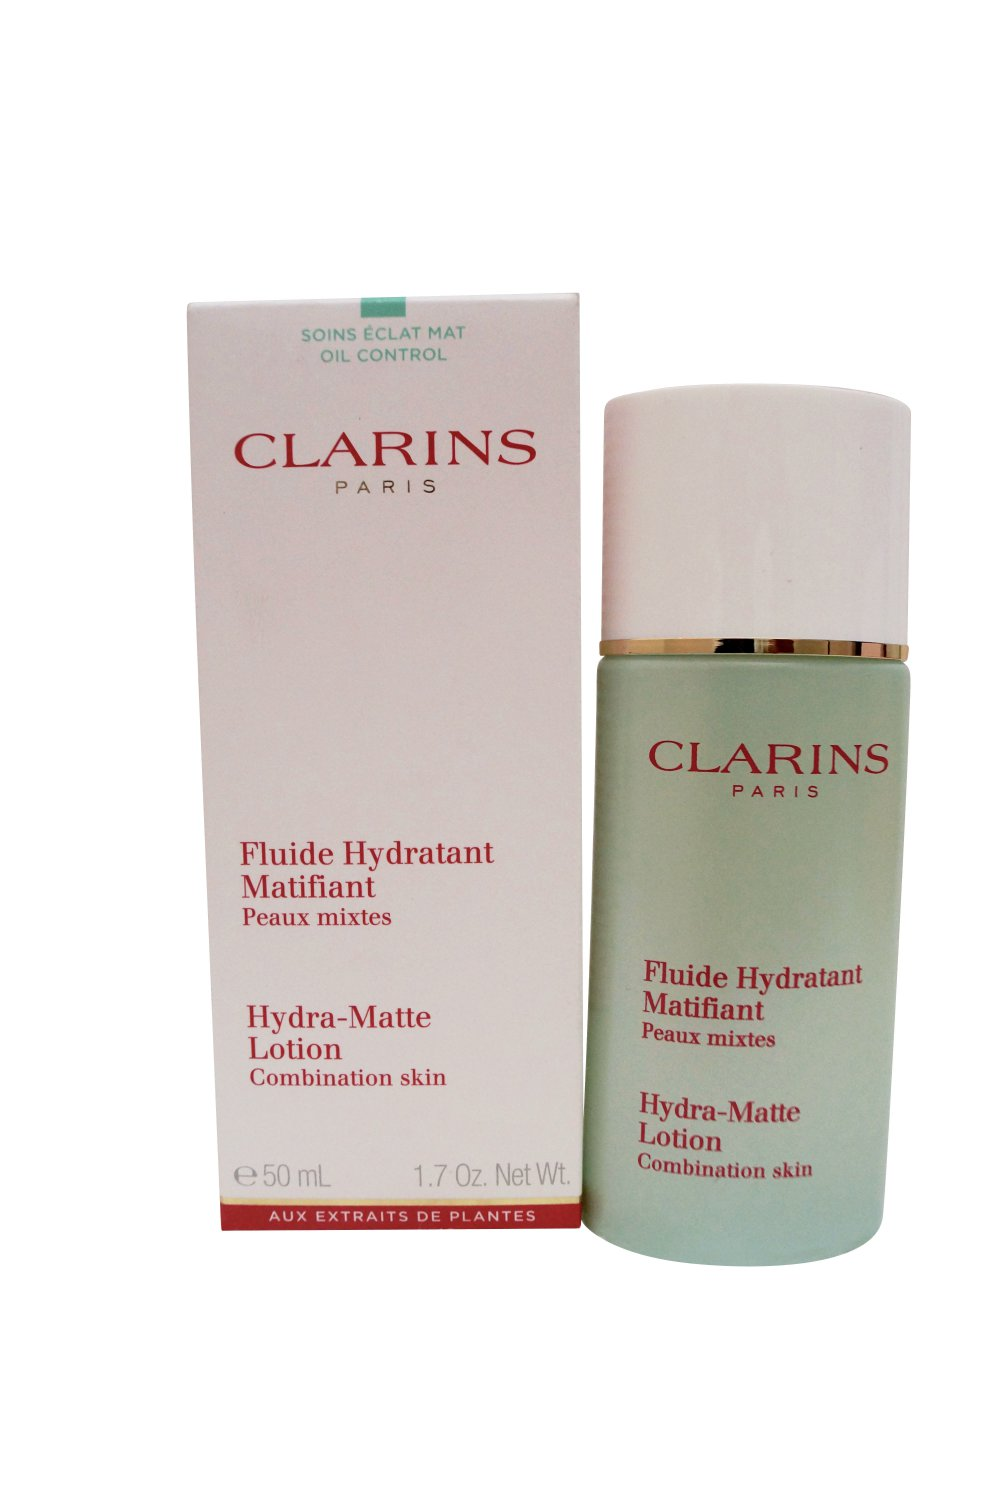 Clarins Hydra-Matte Lotion for Combination Skin 1.7 oz